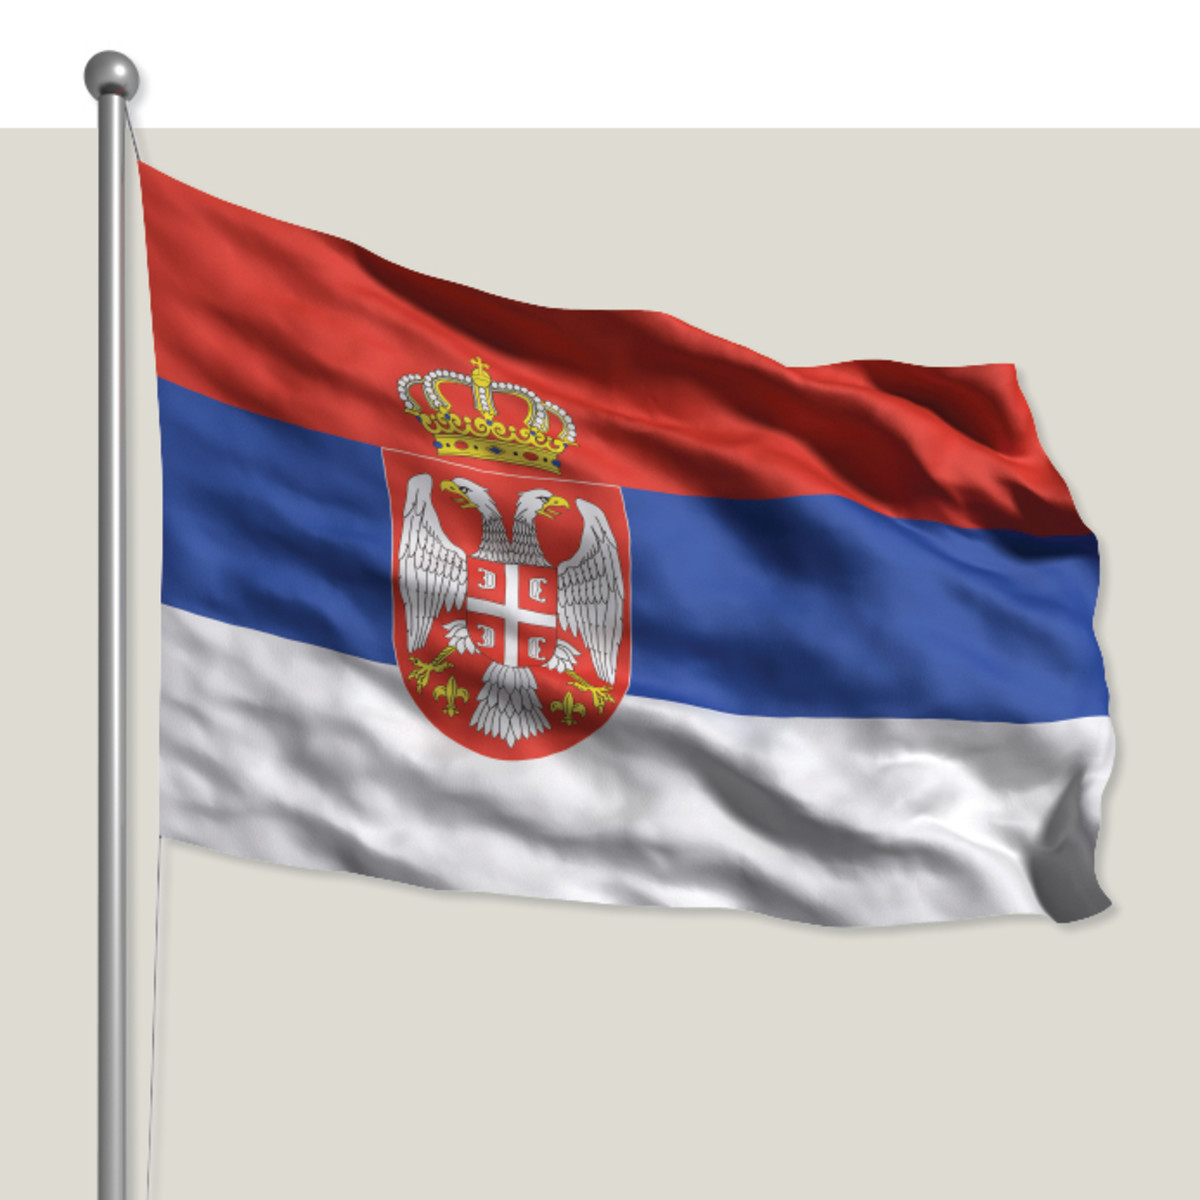 New Serbian flag